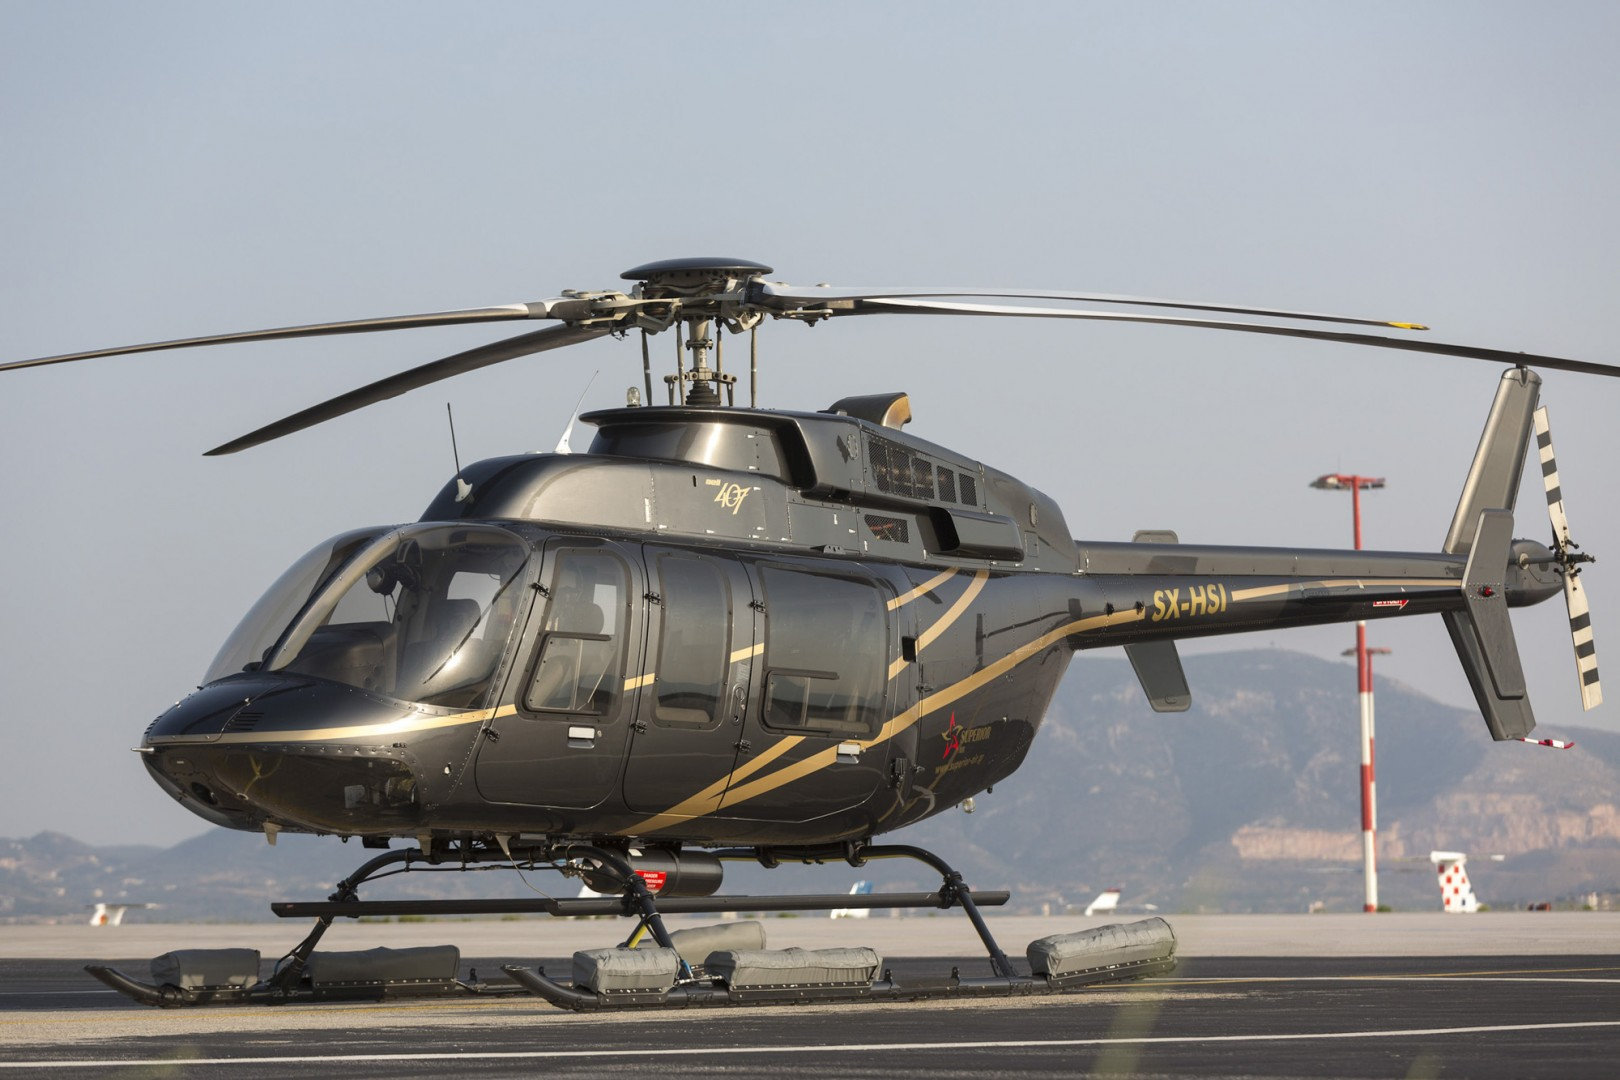 How Much Does It Cost To Rent A Helicopter